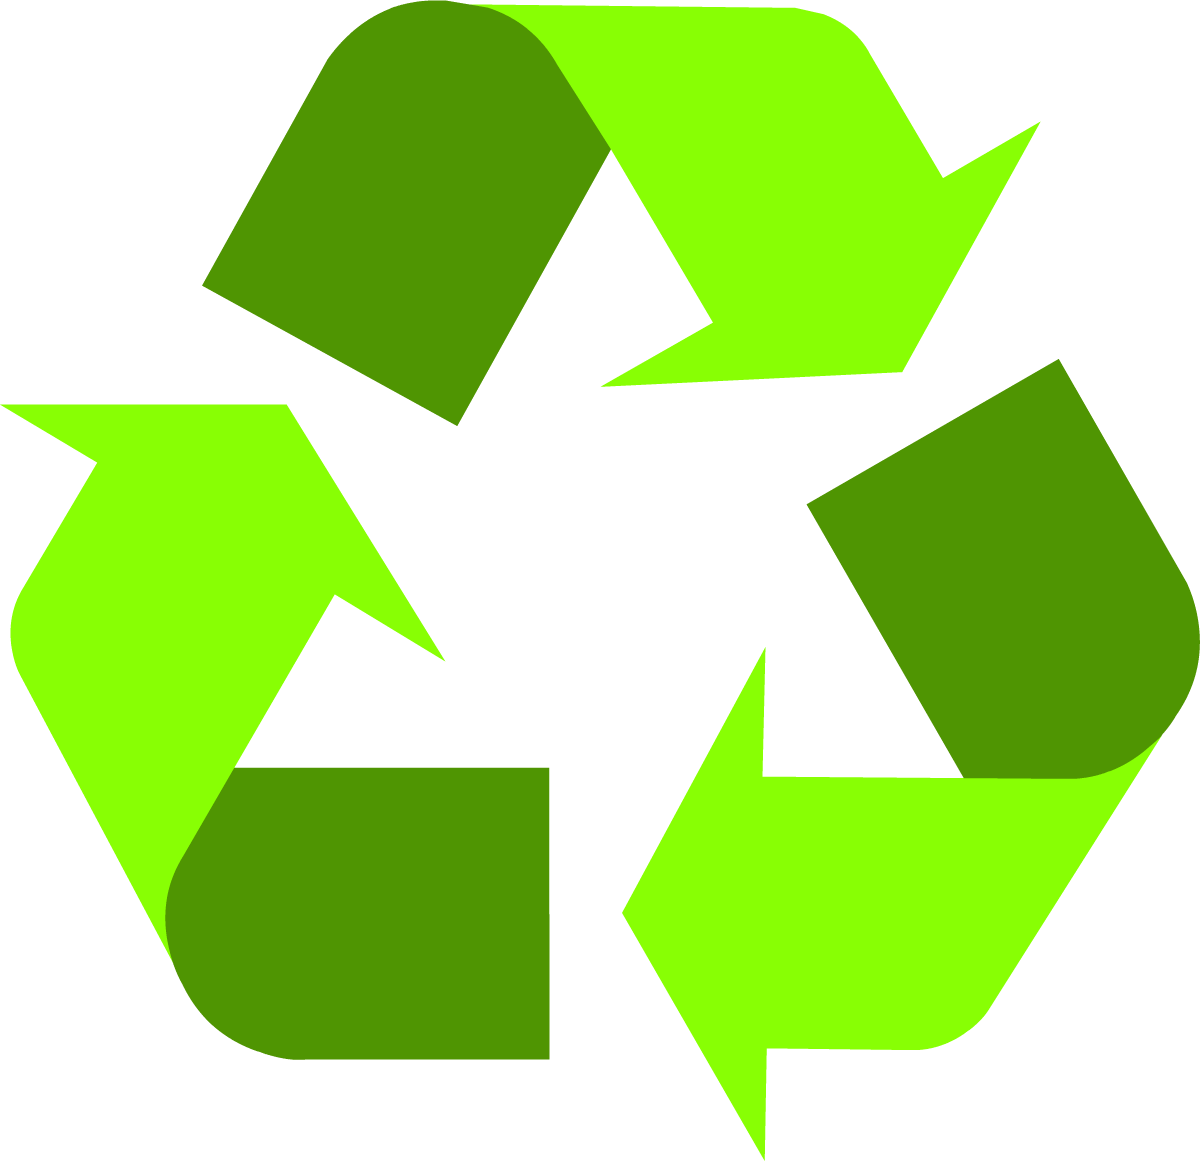 Light Green Recycling Symbol - Recycle PNG